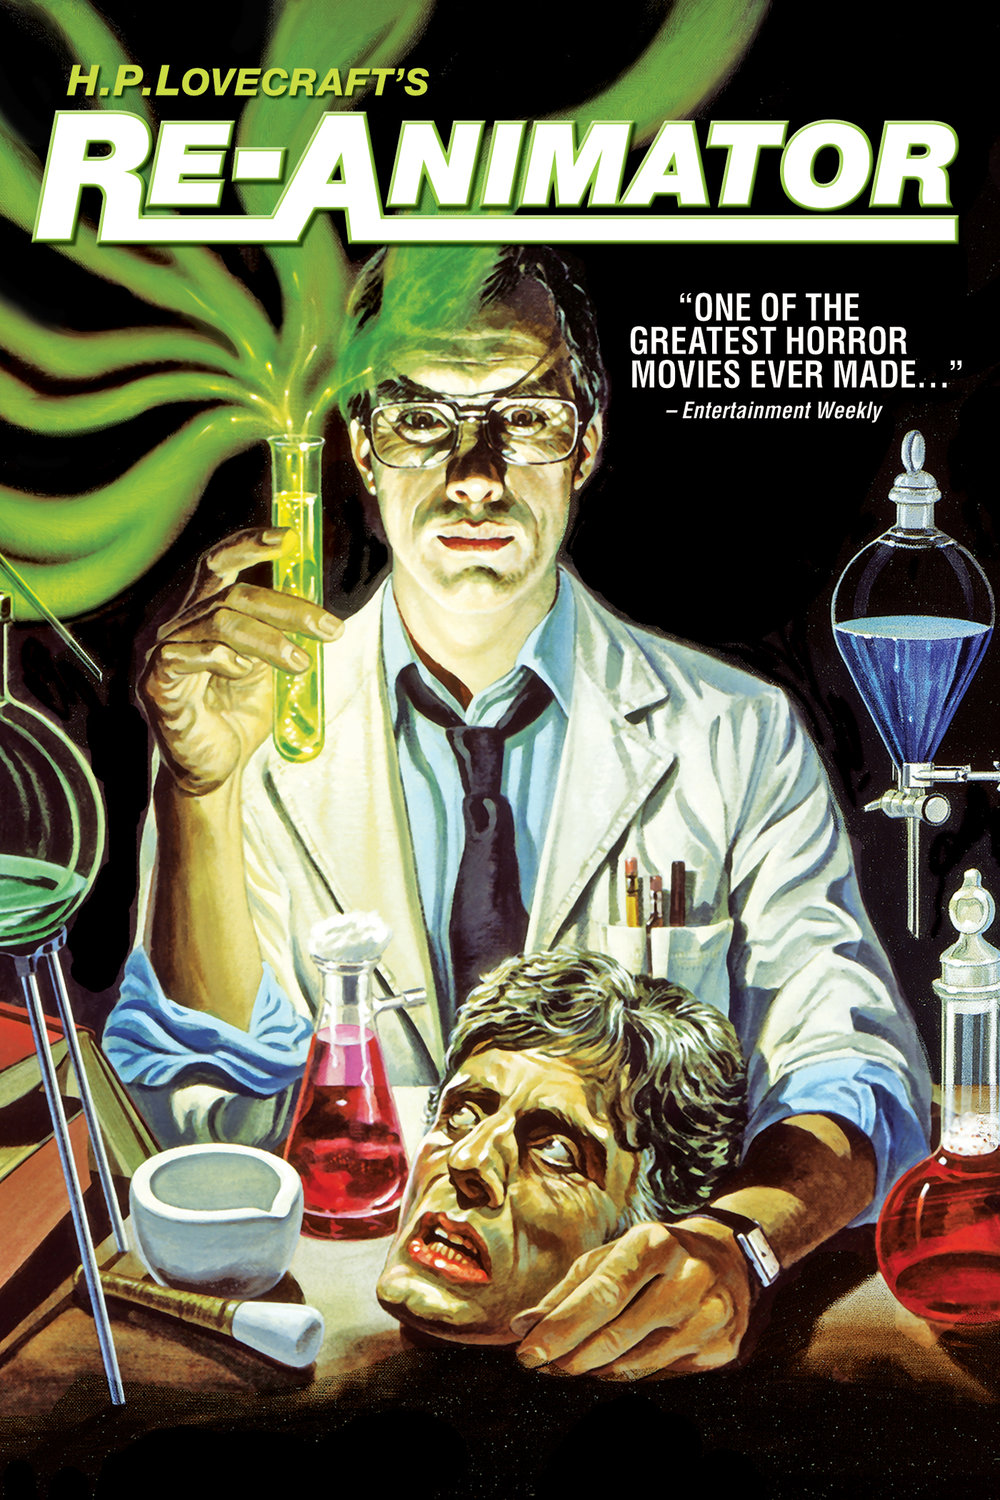 re-animator-poster-artwork-jeffrey-combs-bruce-abbott-barbara-crampton.jpg